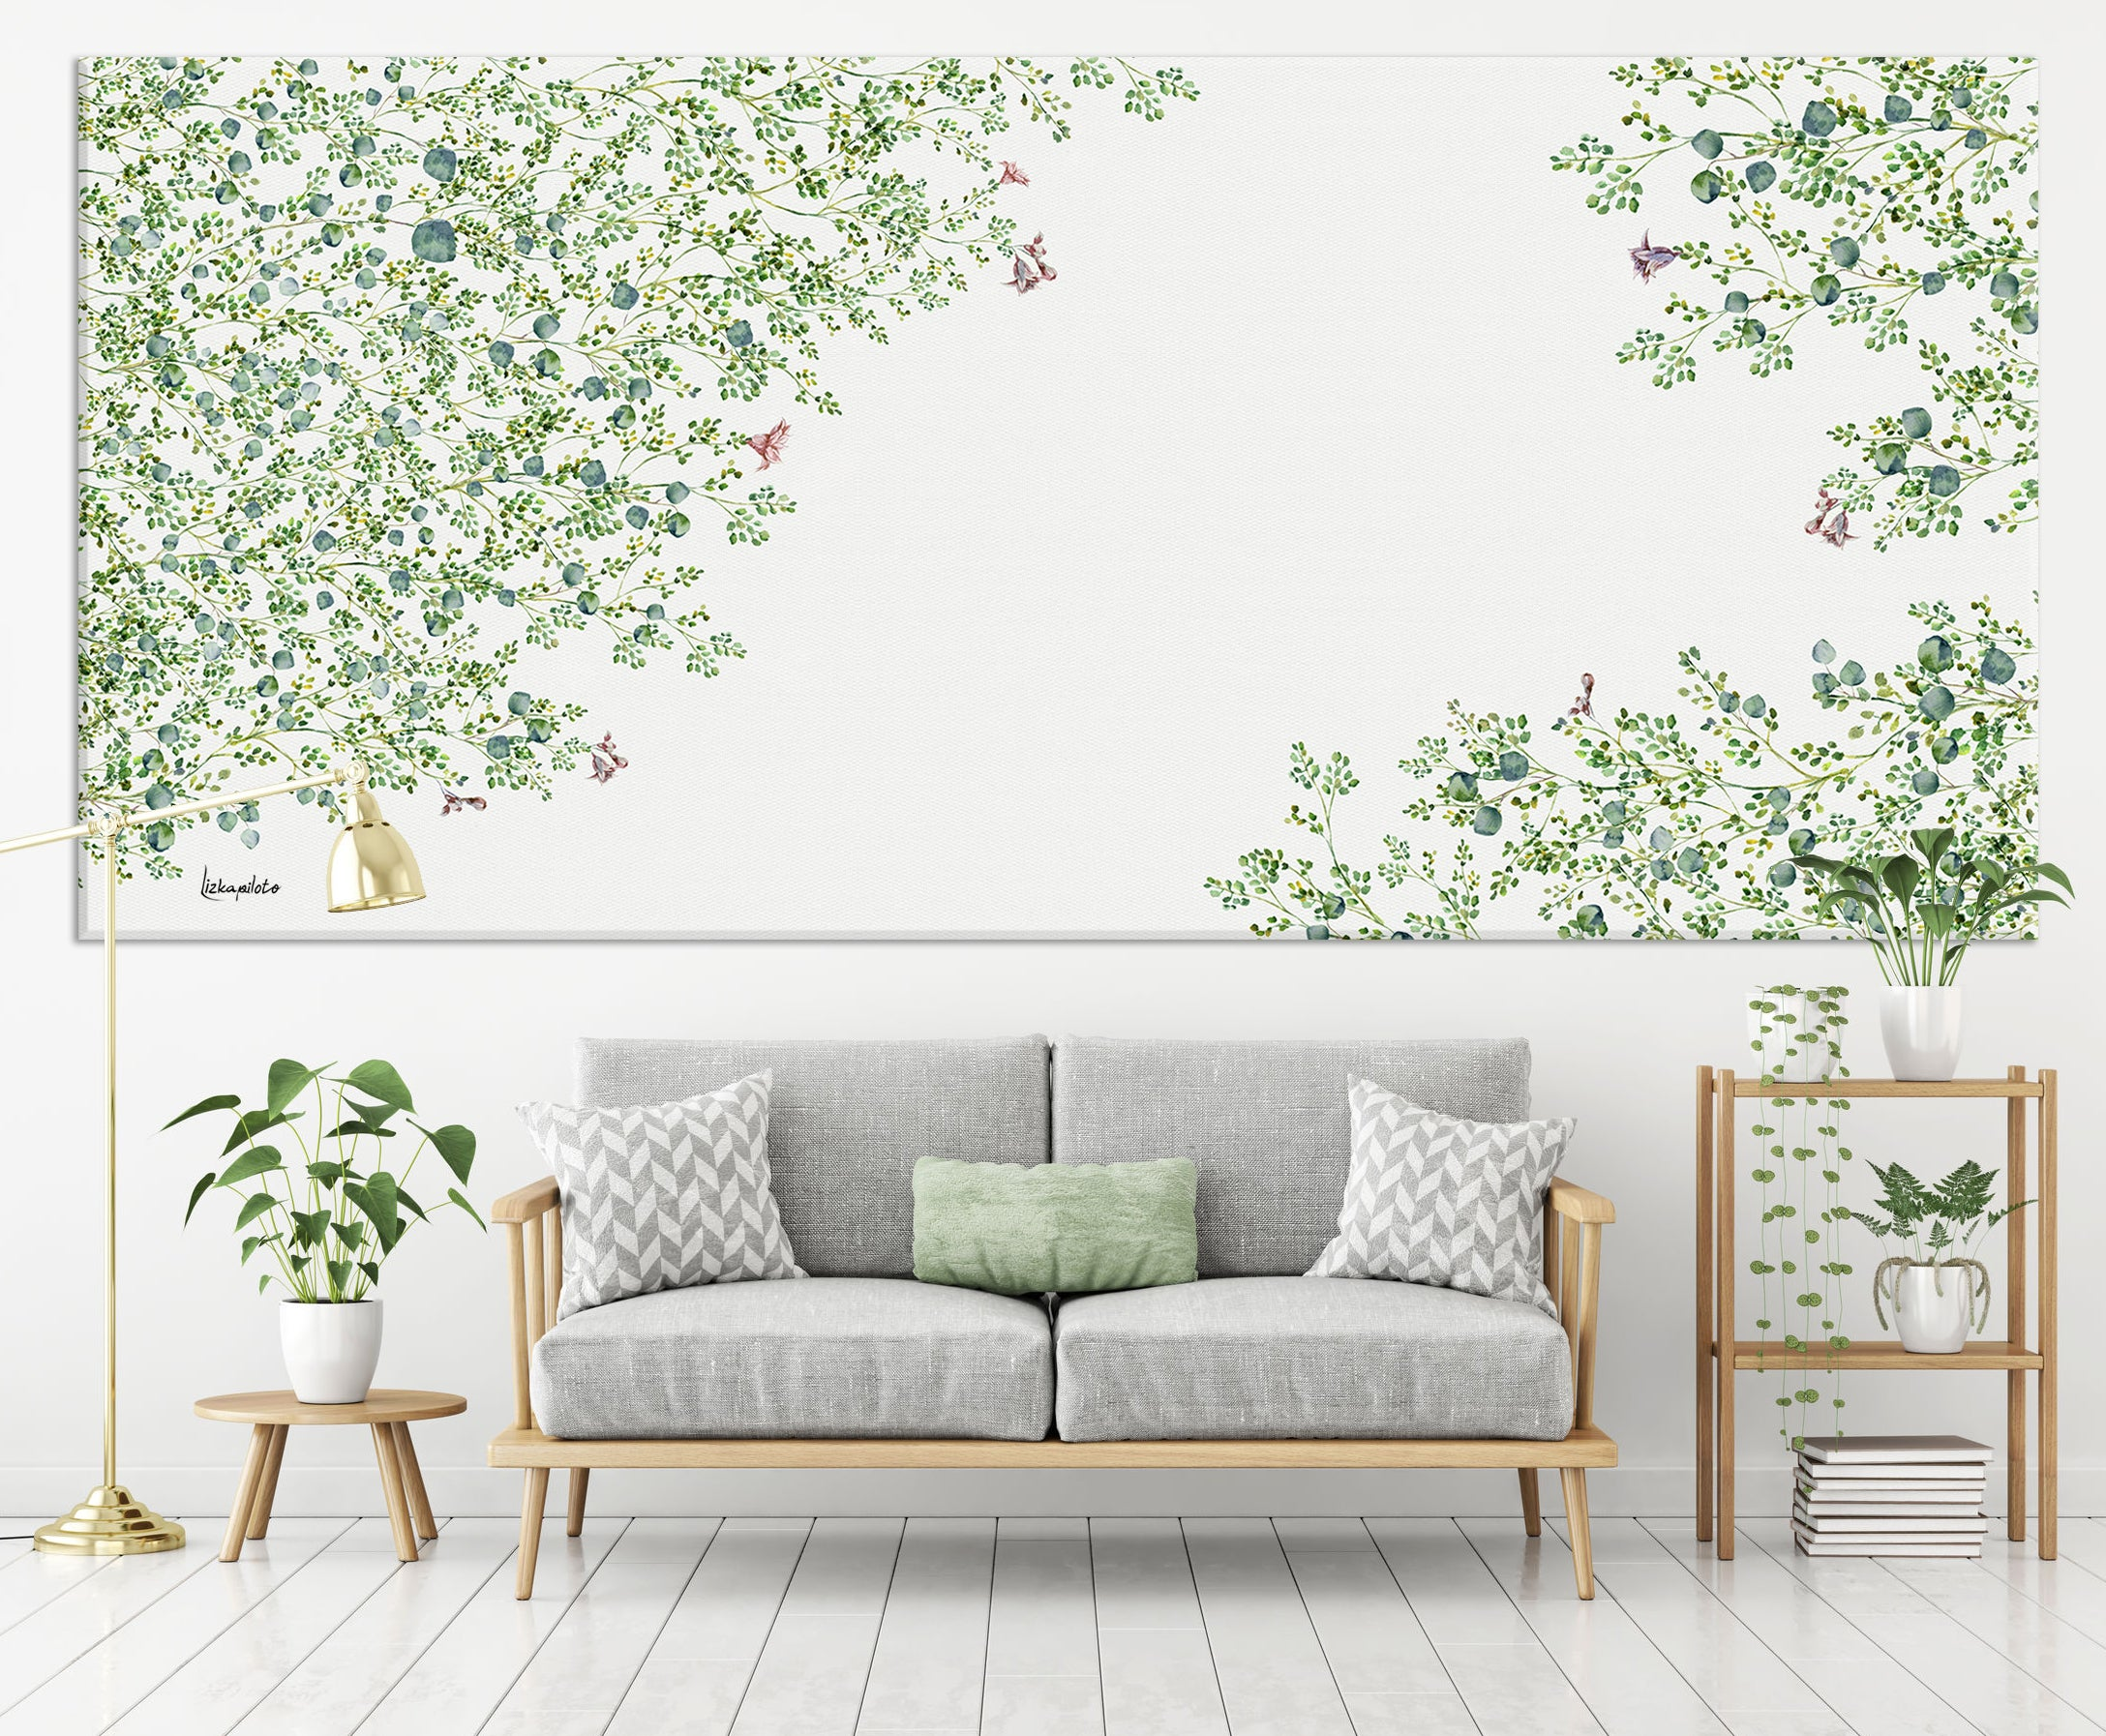 Panoramic wall art of green leaves painting, above gray sofa